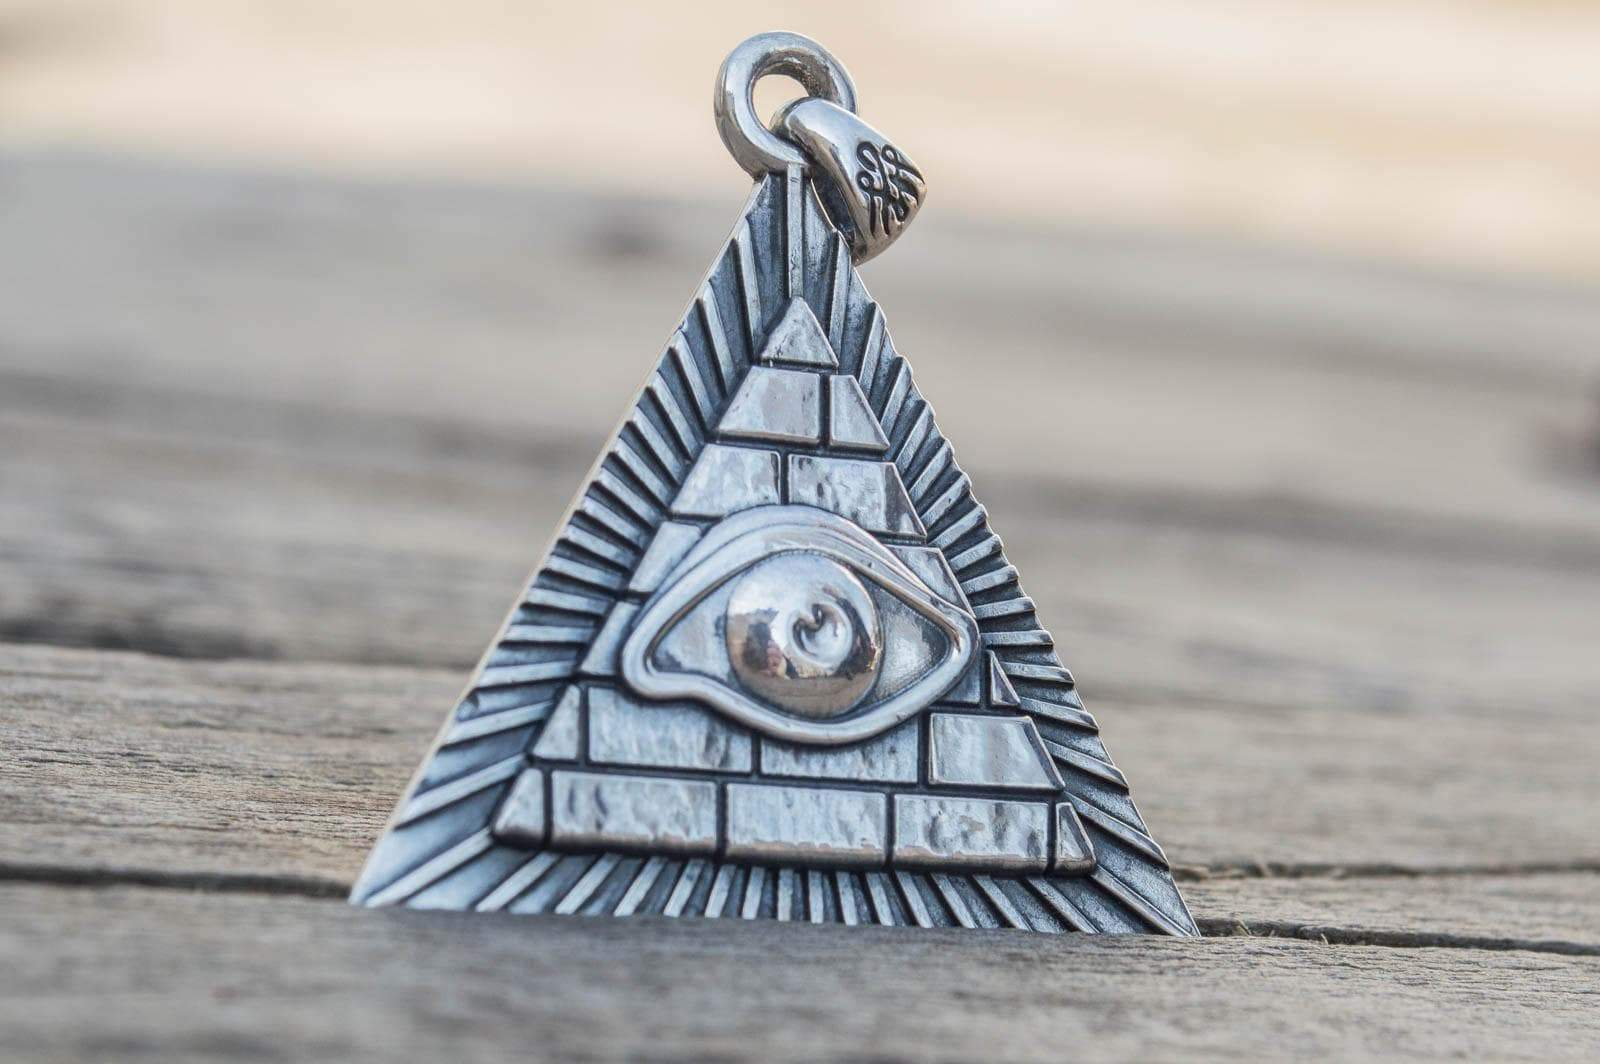 Pendants & Necklaces Freemason Eye of Providence Sterling Silver Handcrafted Pendant Ancient Treasures Ancientreasures Viking Odin Thor Mjolnir Celtic Ancient Egypt Norse Norse Mythology